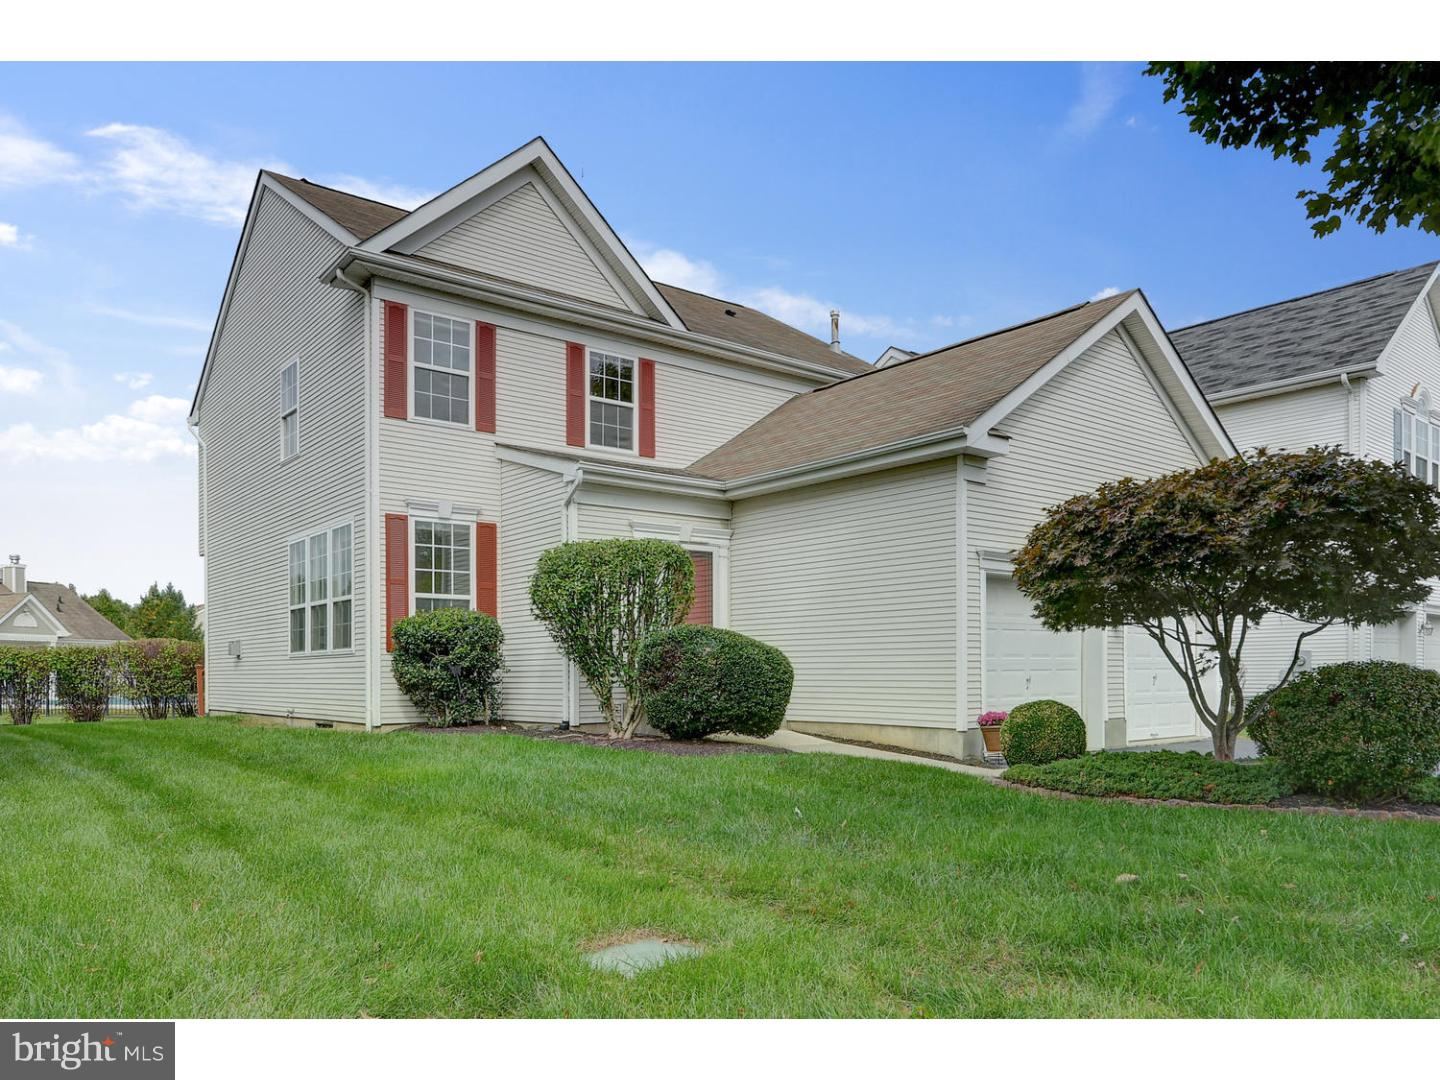 Single Family Home for Sale at 75 FOUNTAYNE Lane Lawrence, New Jersey 08648 United StatesMunicipality: Lawrence Township